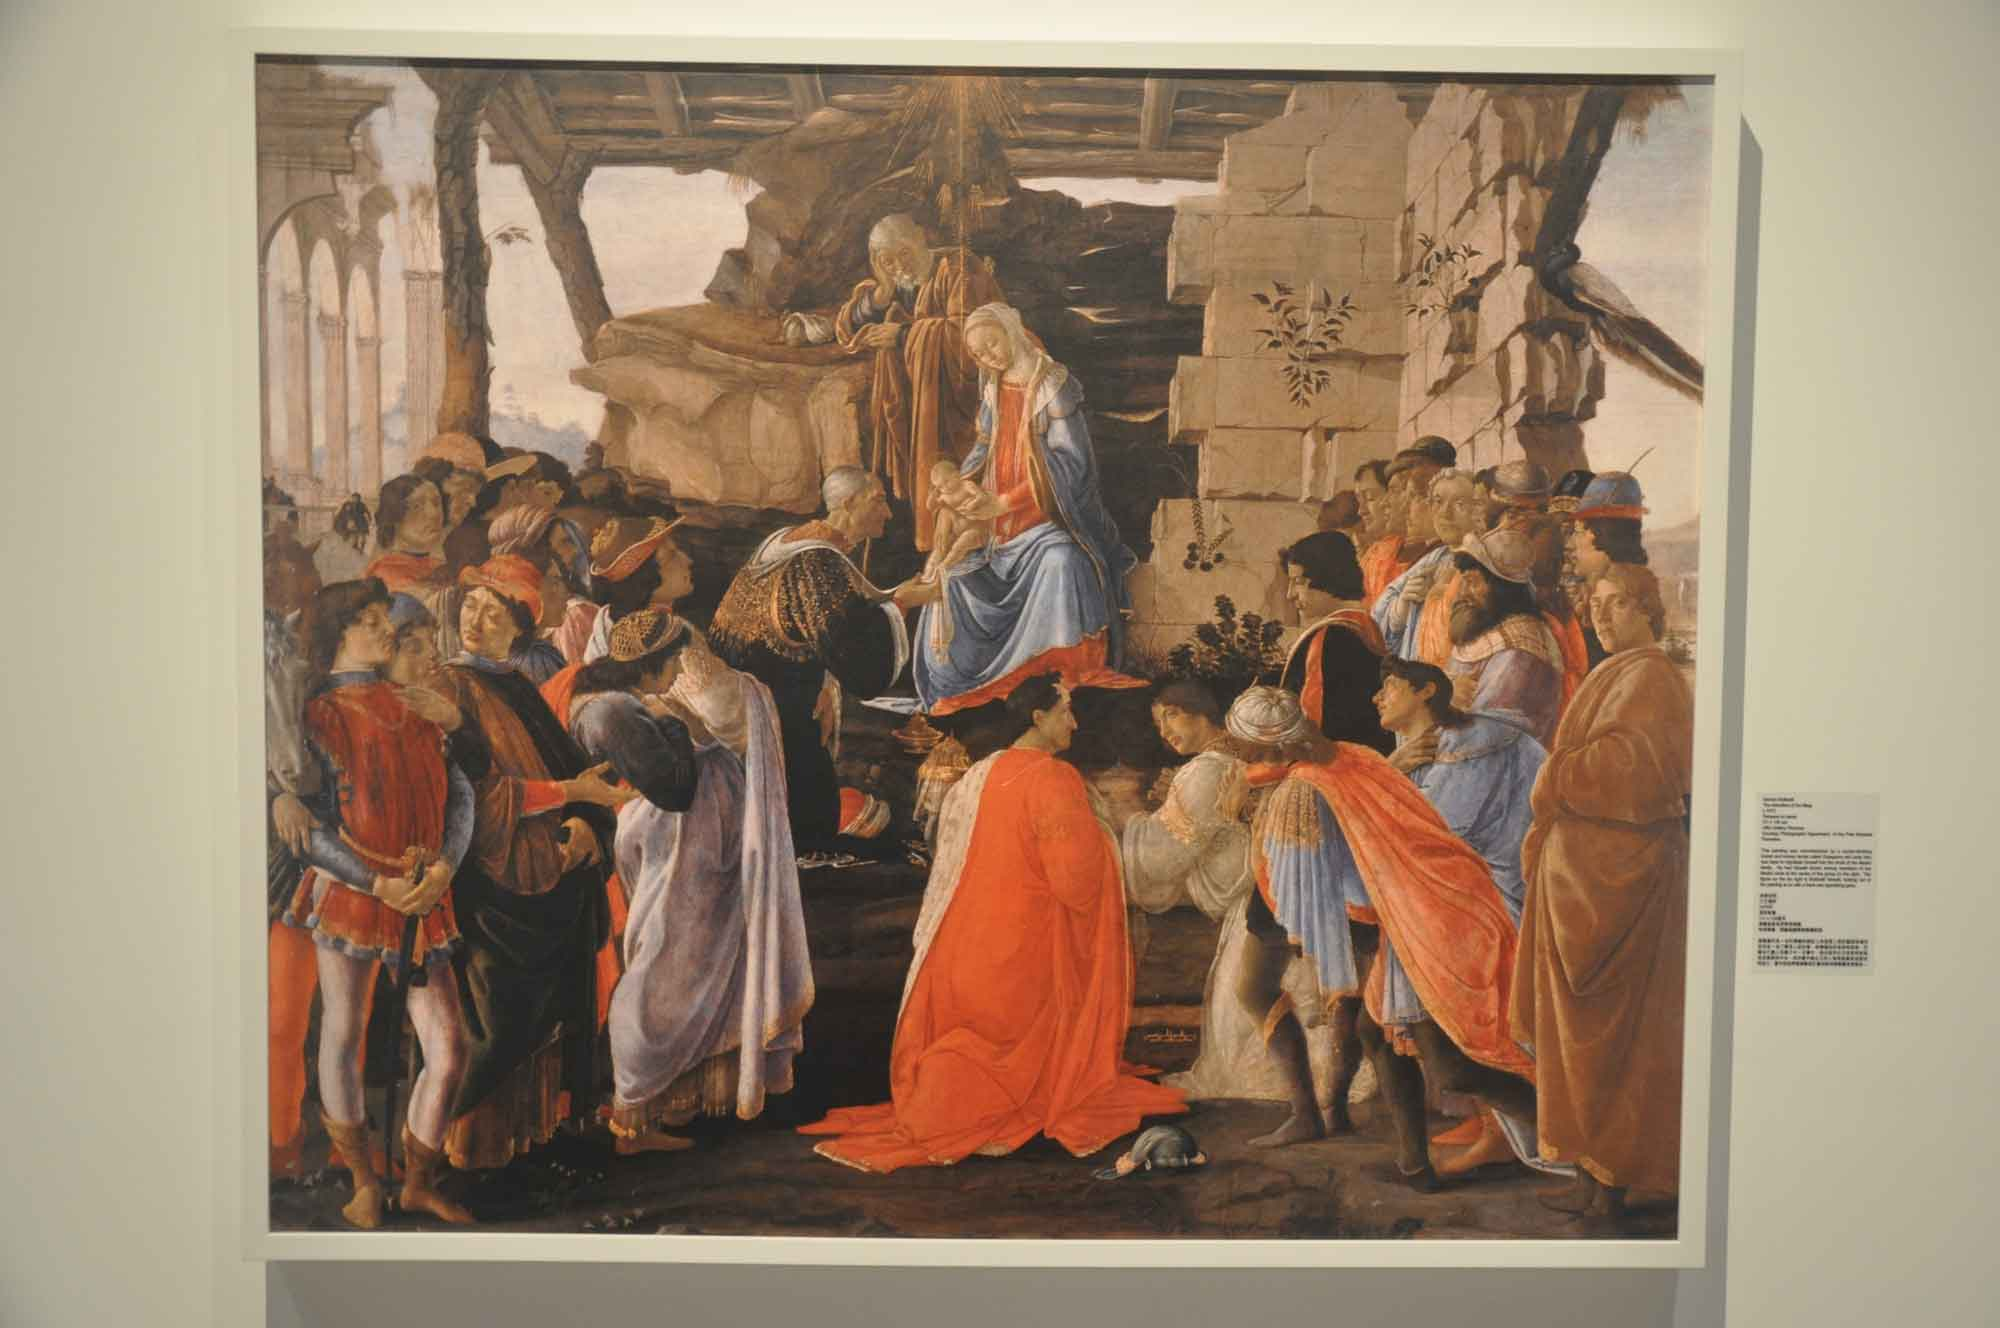 Adoration of the Magi - Botticelli